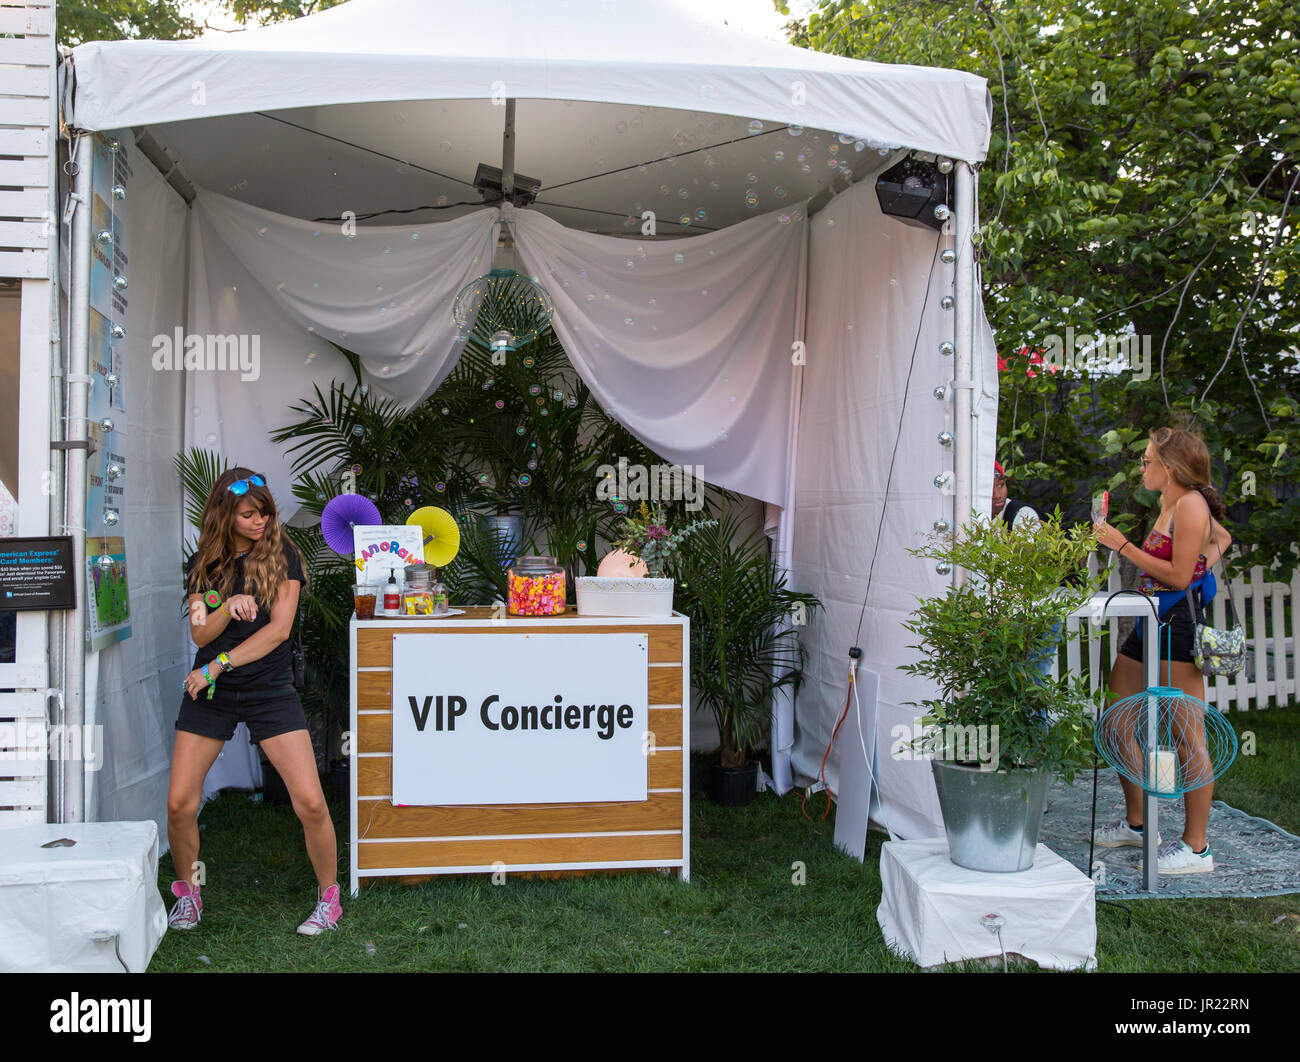 the VIP Concierge tent at Panorama Music Festival In New York City - Stock Image